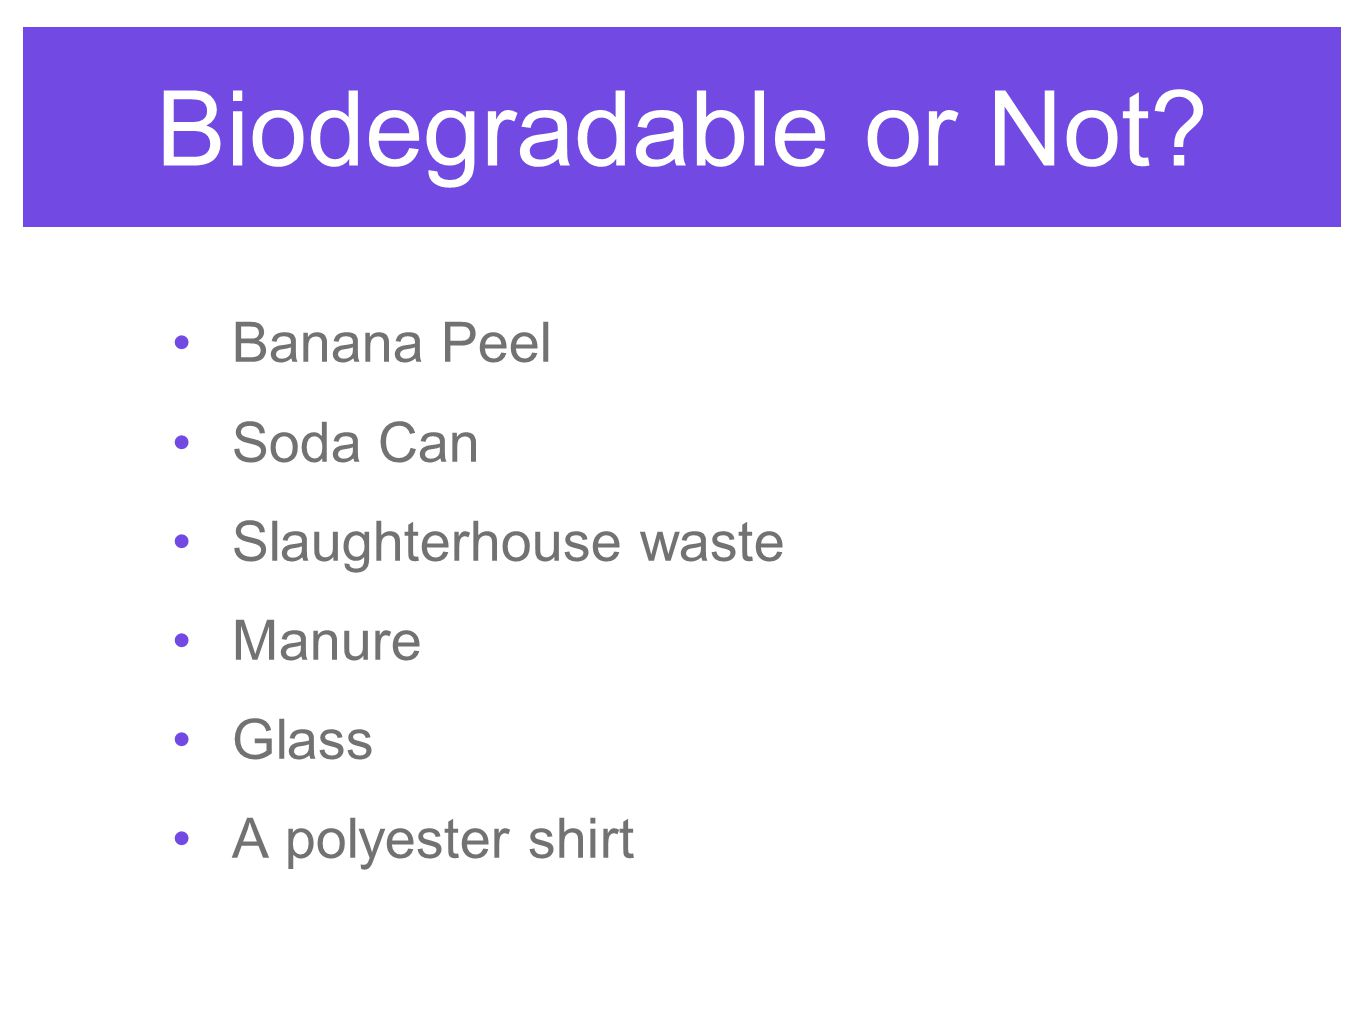 Biodegradable or Not Banana Peel Soda Can Slaughterhouse waste Manure